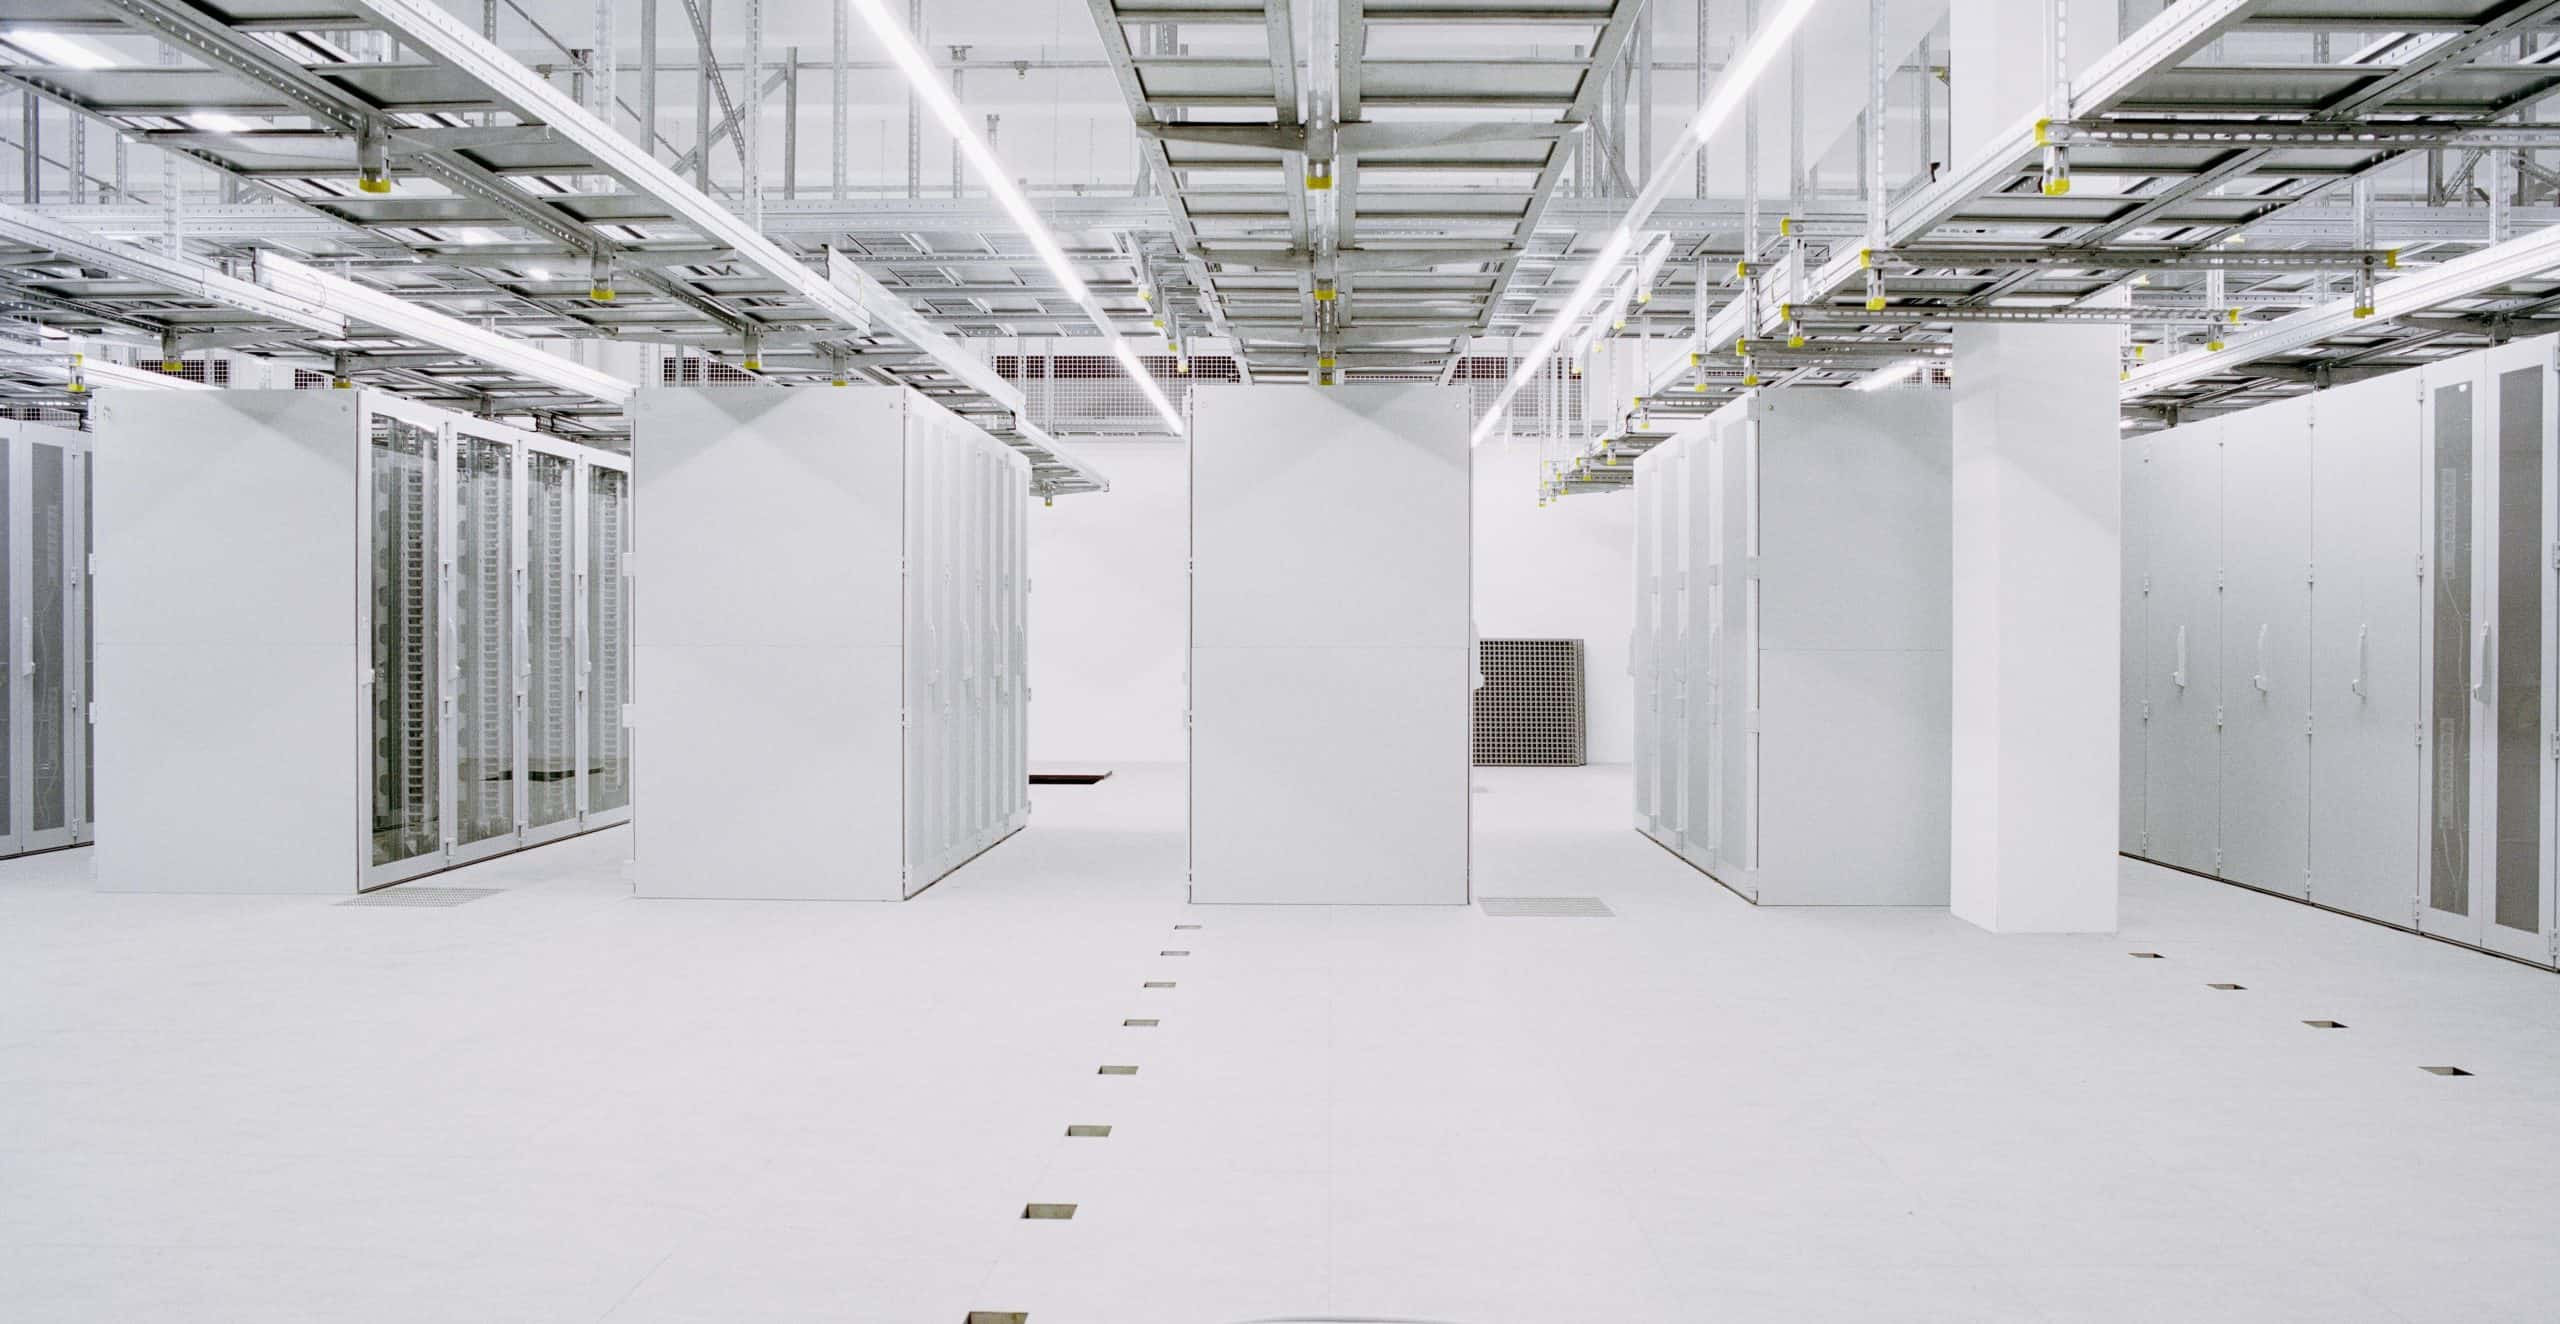 We help you to plan, build and operate highly efficient, strongly protected data centers.